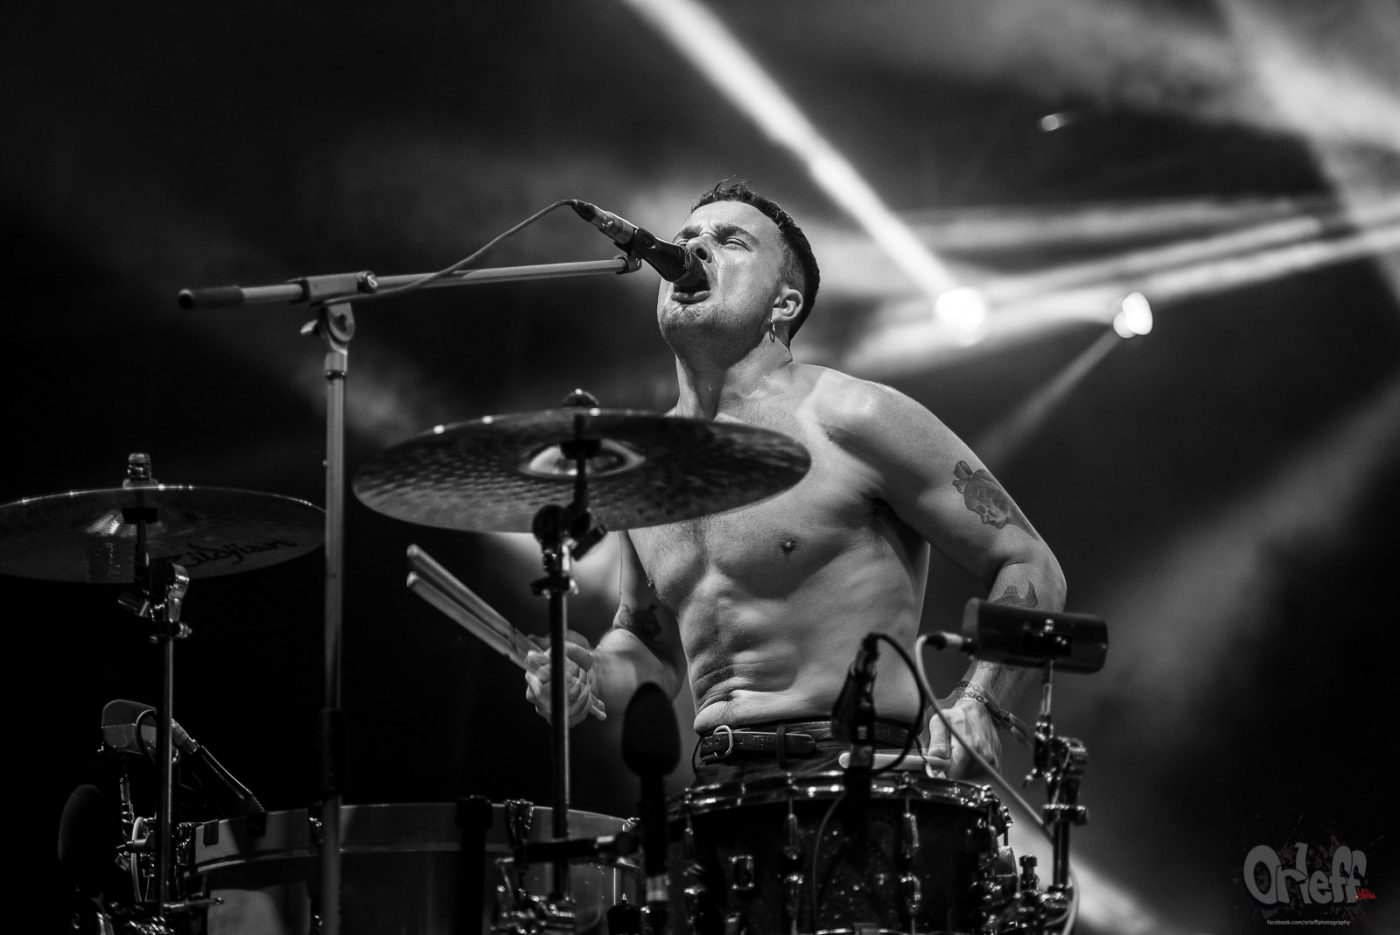 Slaves @ INmusic festival, 2017